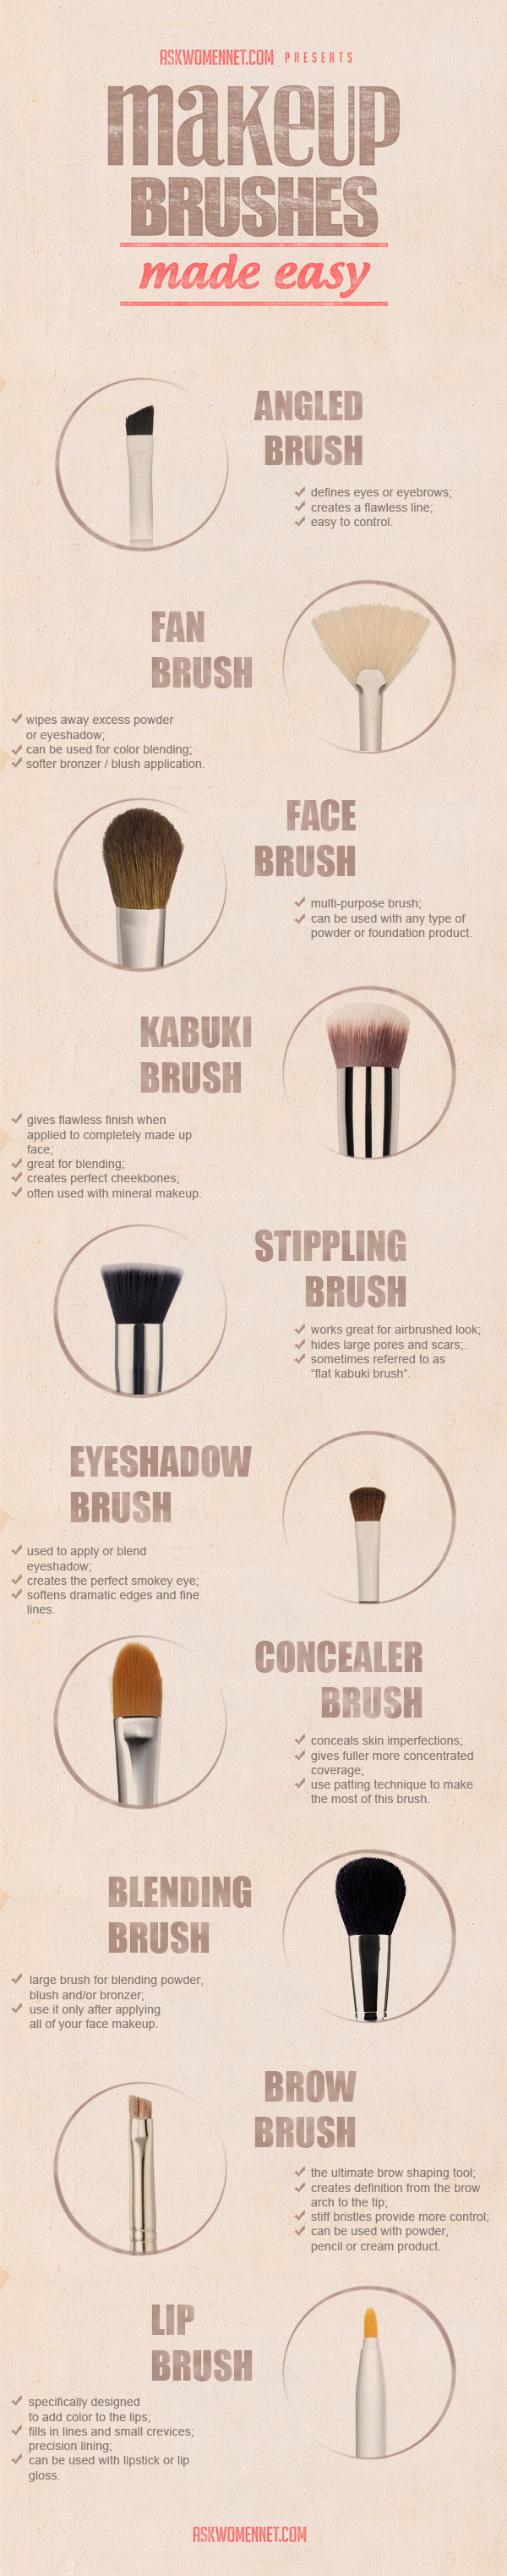 Makeup Brushes Made Easy. Infographic by AskWomenNet.com